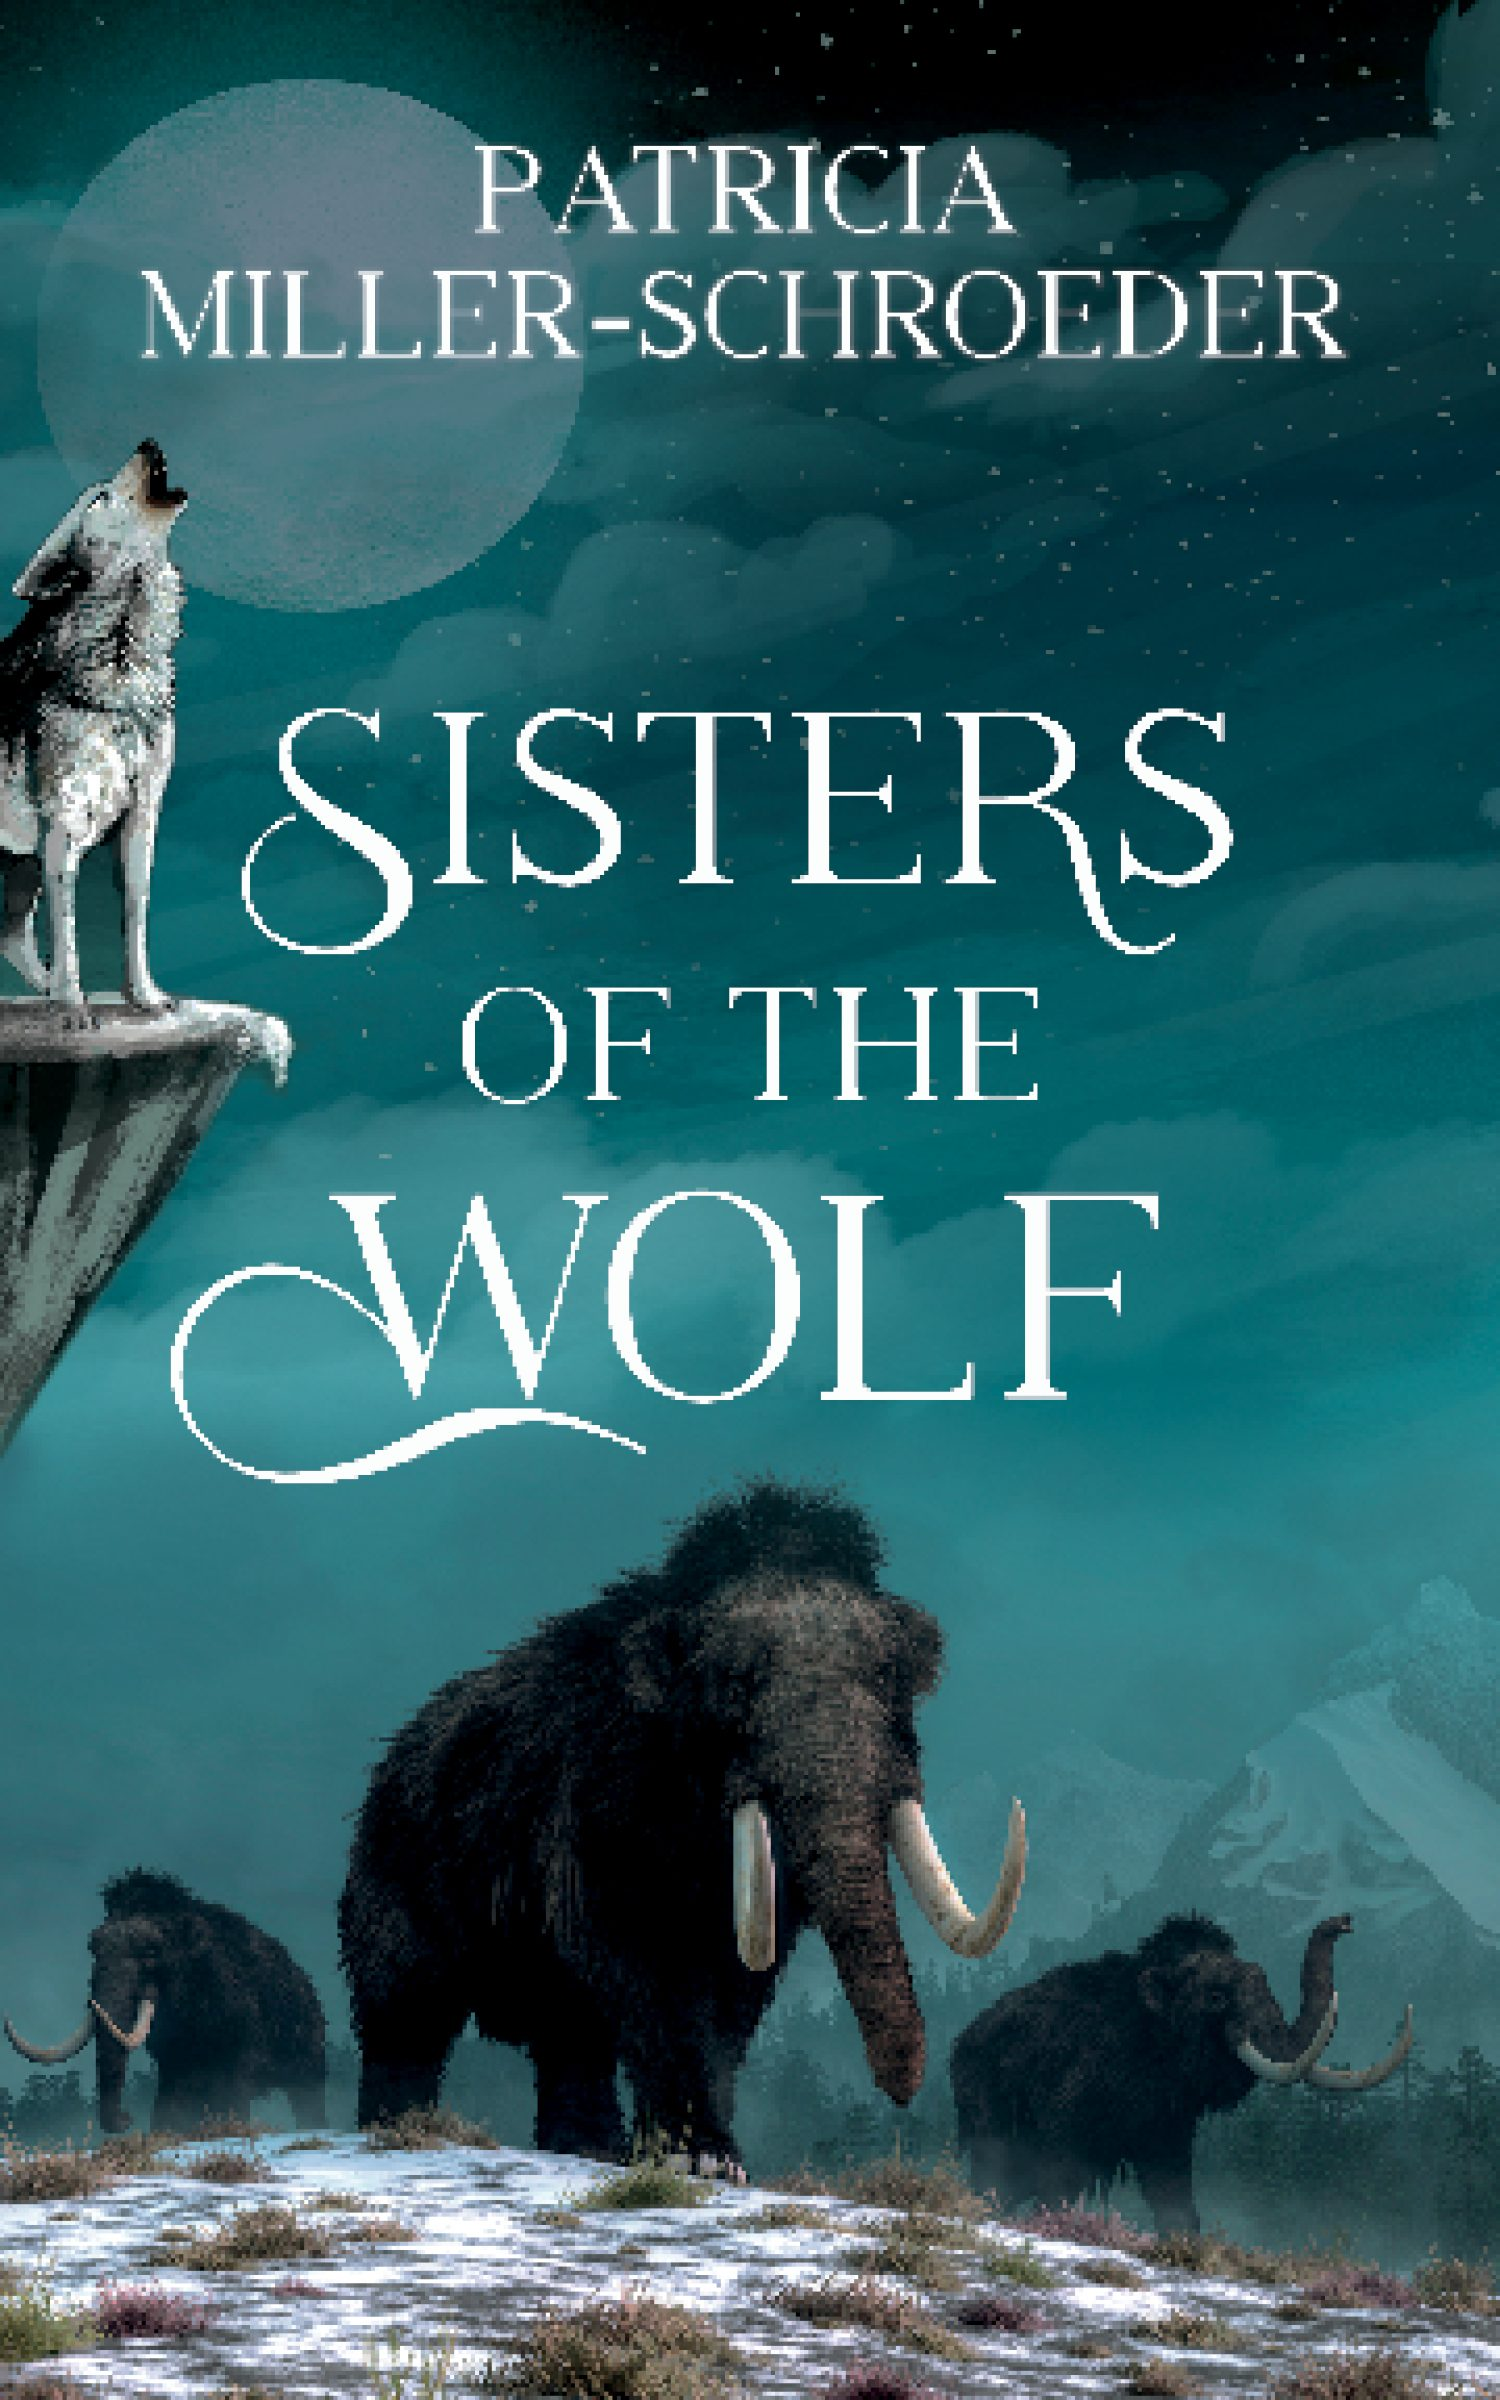 Sisters Of The Wolf By Patricia Miller-Schroeder Release Date? 2021 YA Historical Fiction